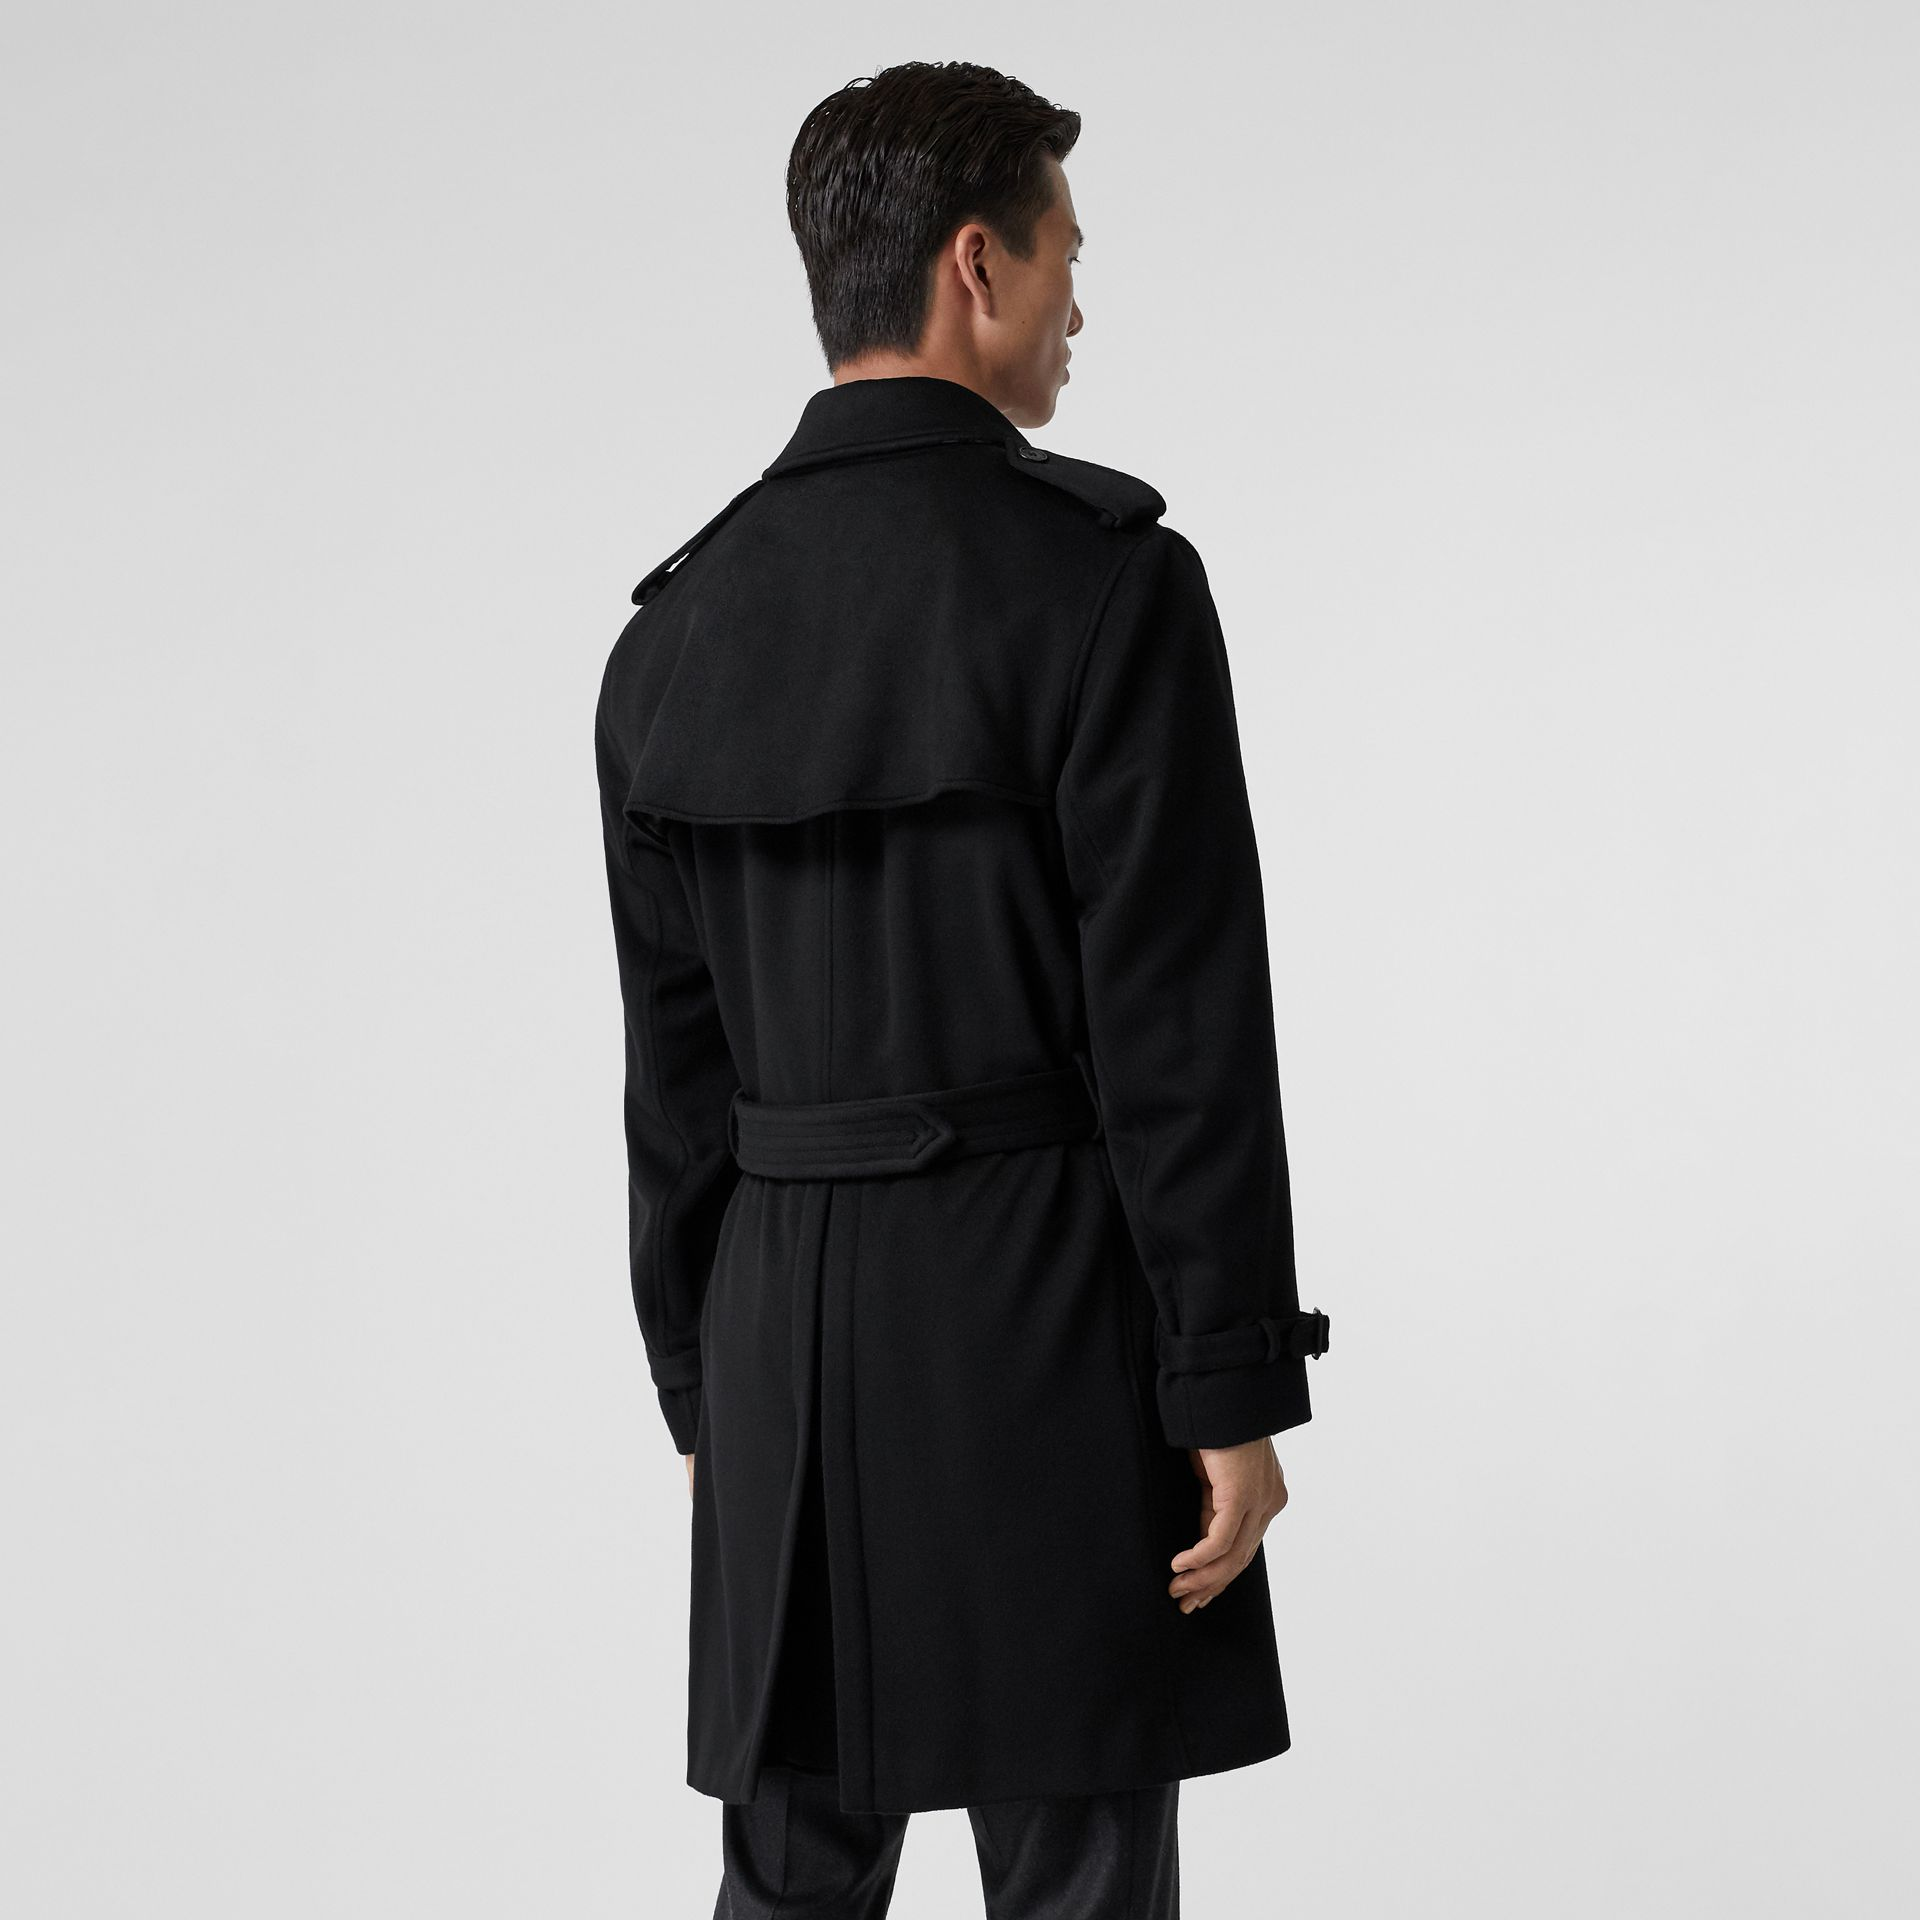 Cashmere Trench Coat in Black - Men | Burberry Hong Kong S.A.R - gallery image 2